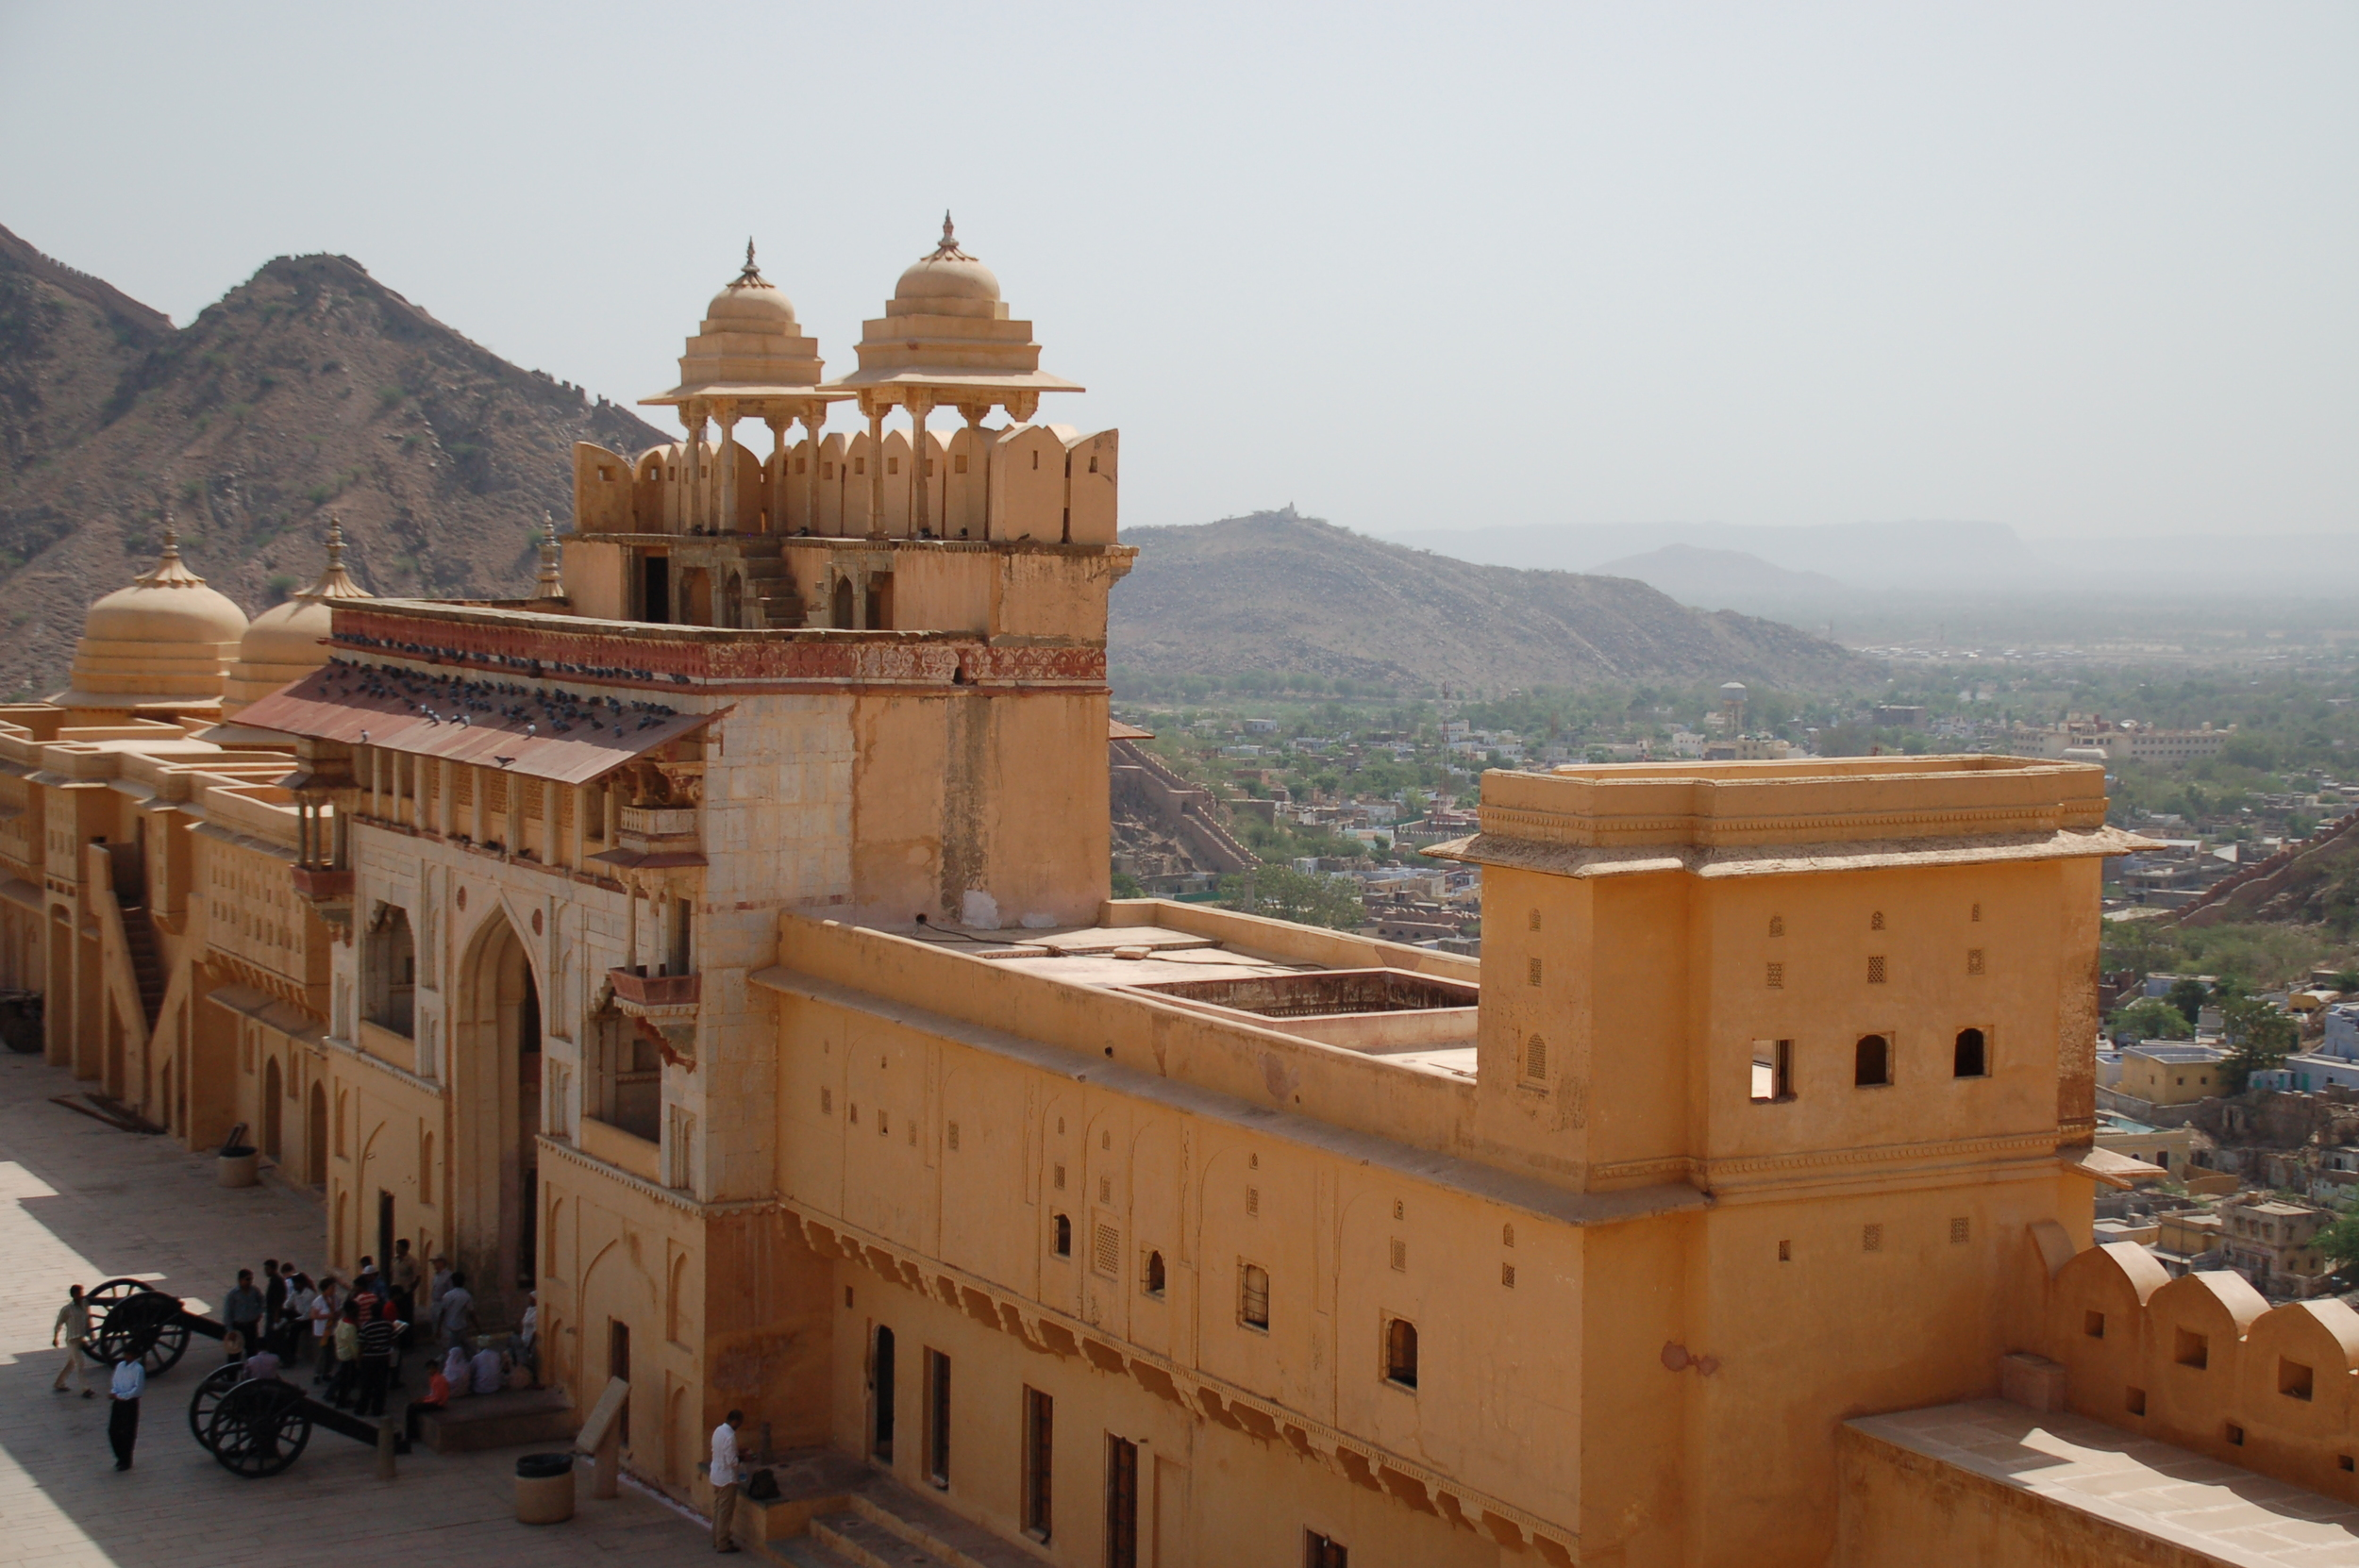 Sitting on top of Amber Fort